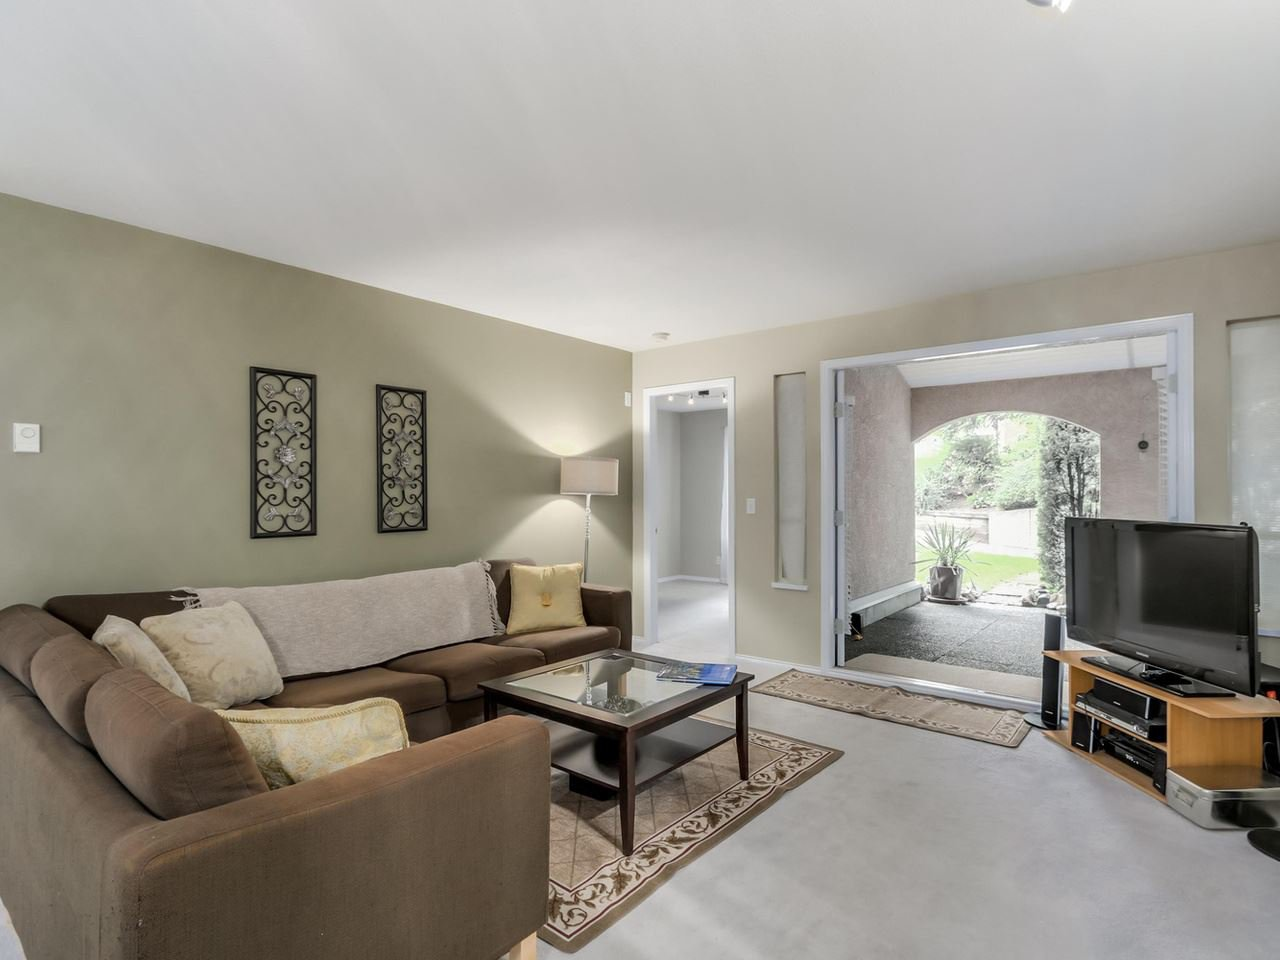 Photo 3: Photos: 107 515 WHITING Way in Coquitlam: Coquitlam West Condo for sale : MLS®# R2073119